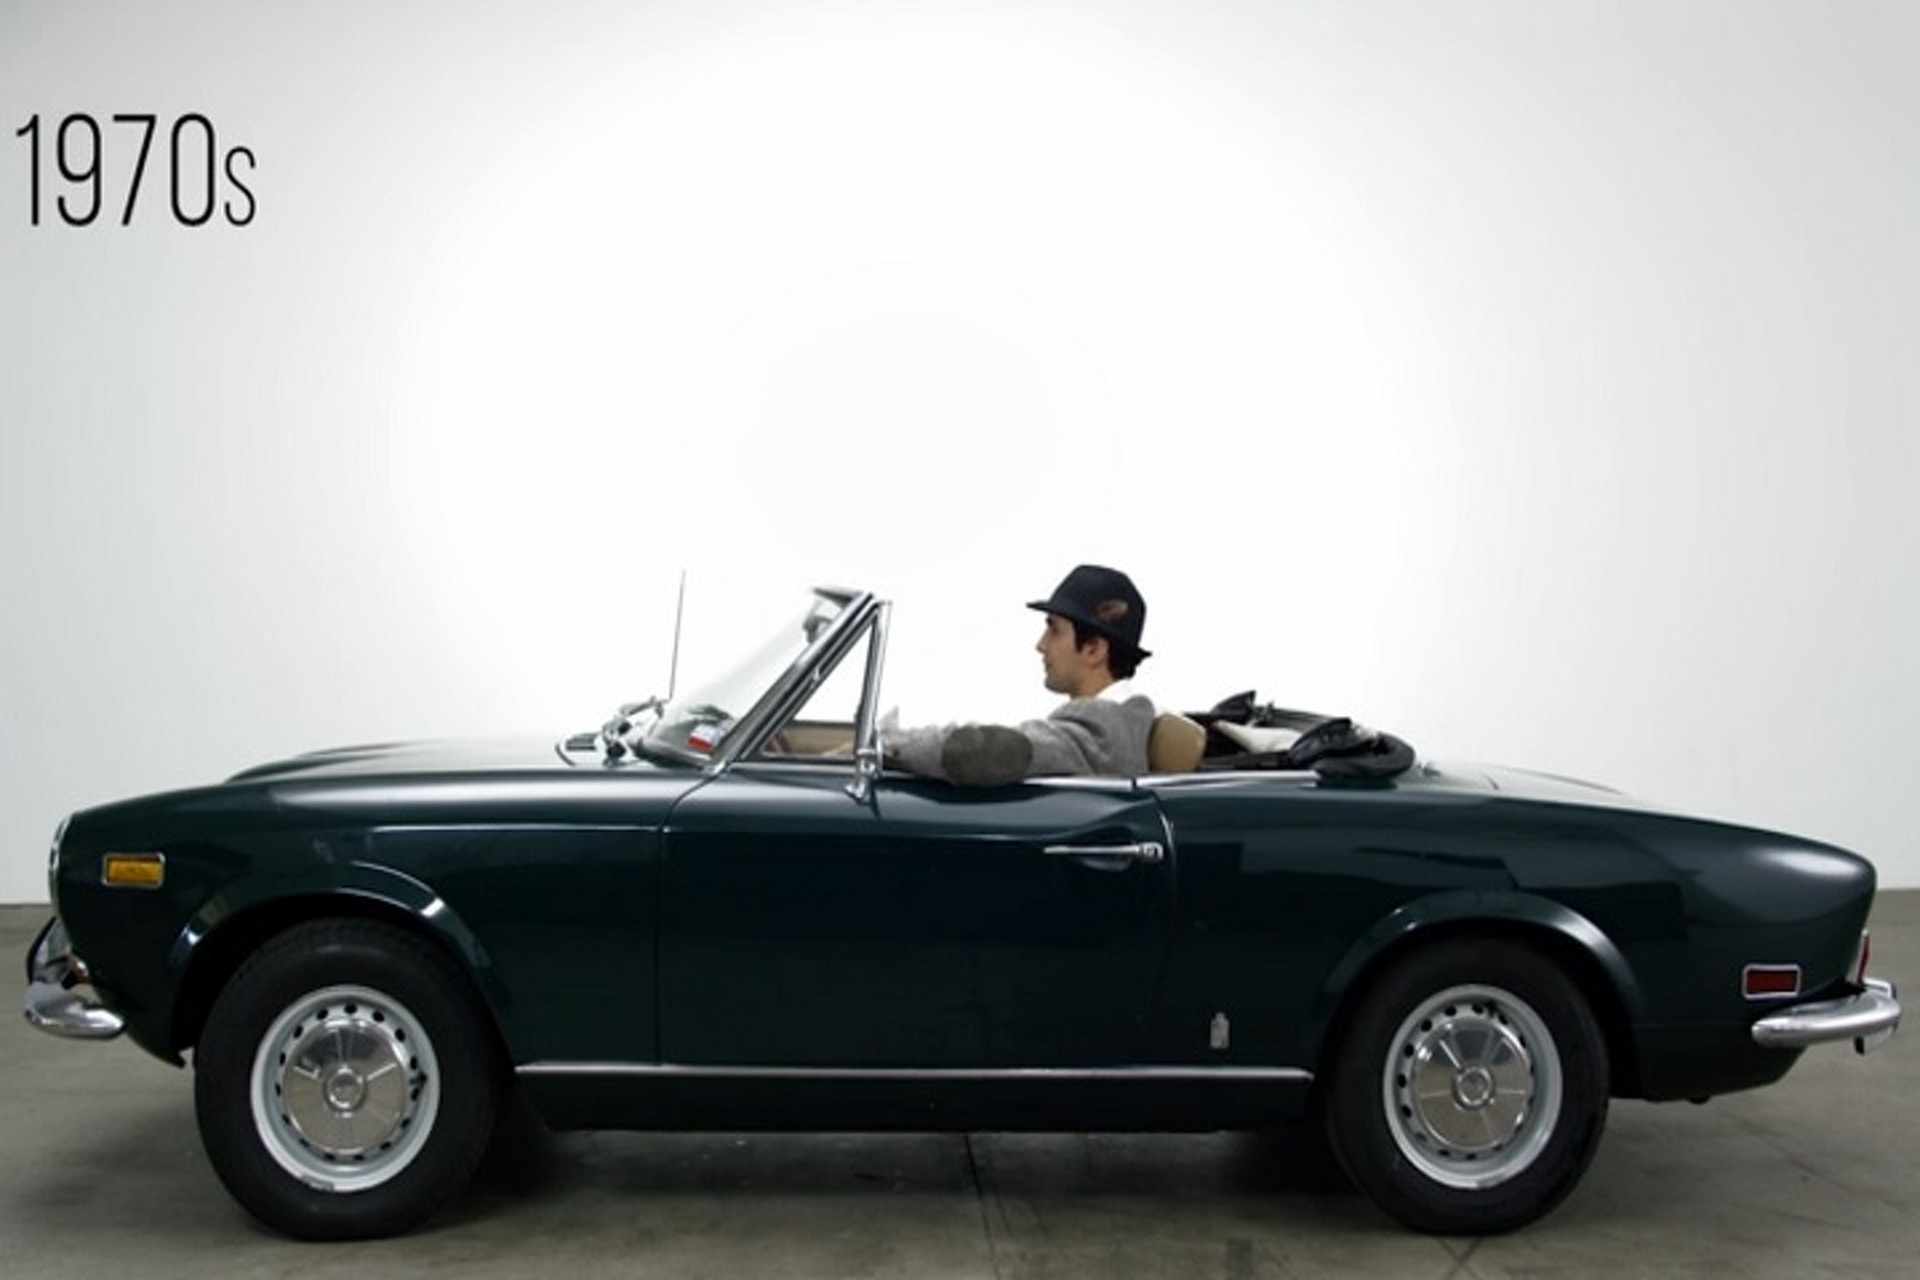 Watch the Evolution of Car Design Over the Last 100 Years